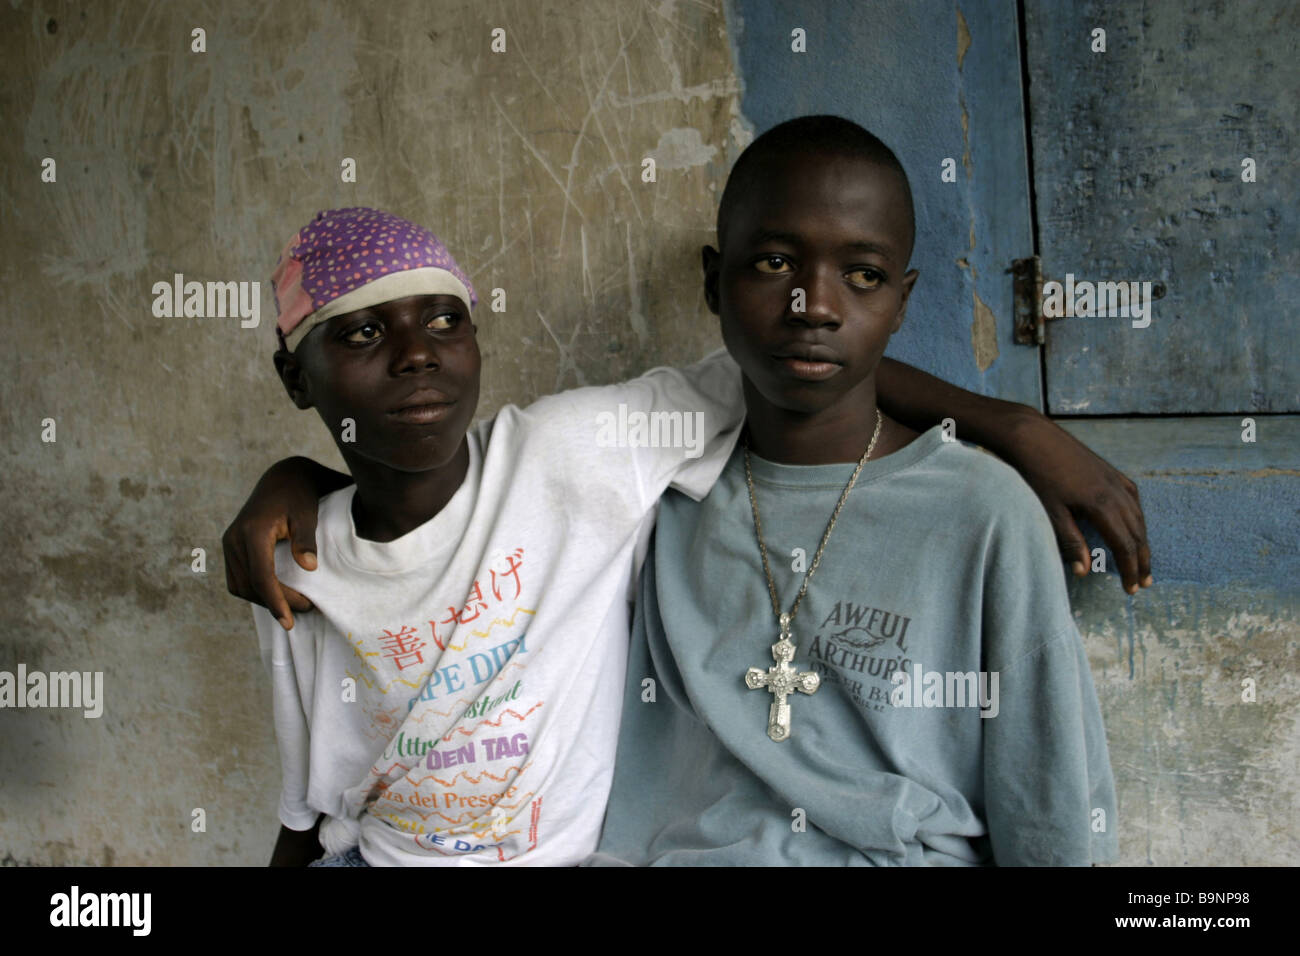 Two ex-child soldiers at a rehabilitation centre in Liberia. These teenage boys had fought for rebel forces during - Stock Image